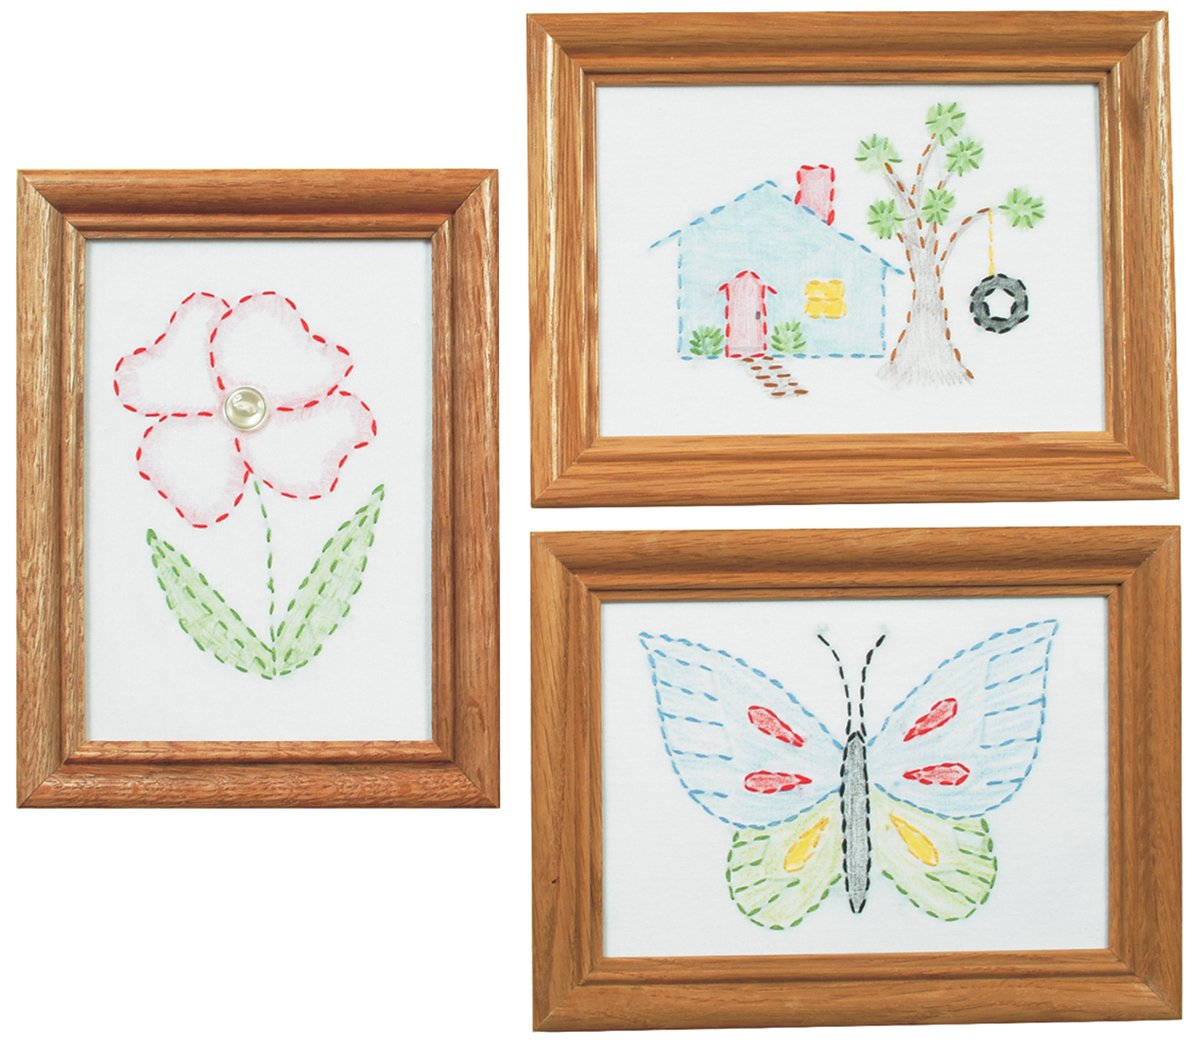 WHITE CaptainCrafts Hot New Cross Stitch Kits Needlecrafts Patterns Counted Embroidery Kit Birds Twitter And Fragrance Of Flowers